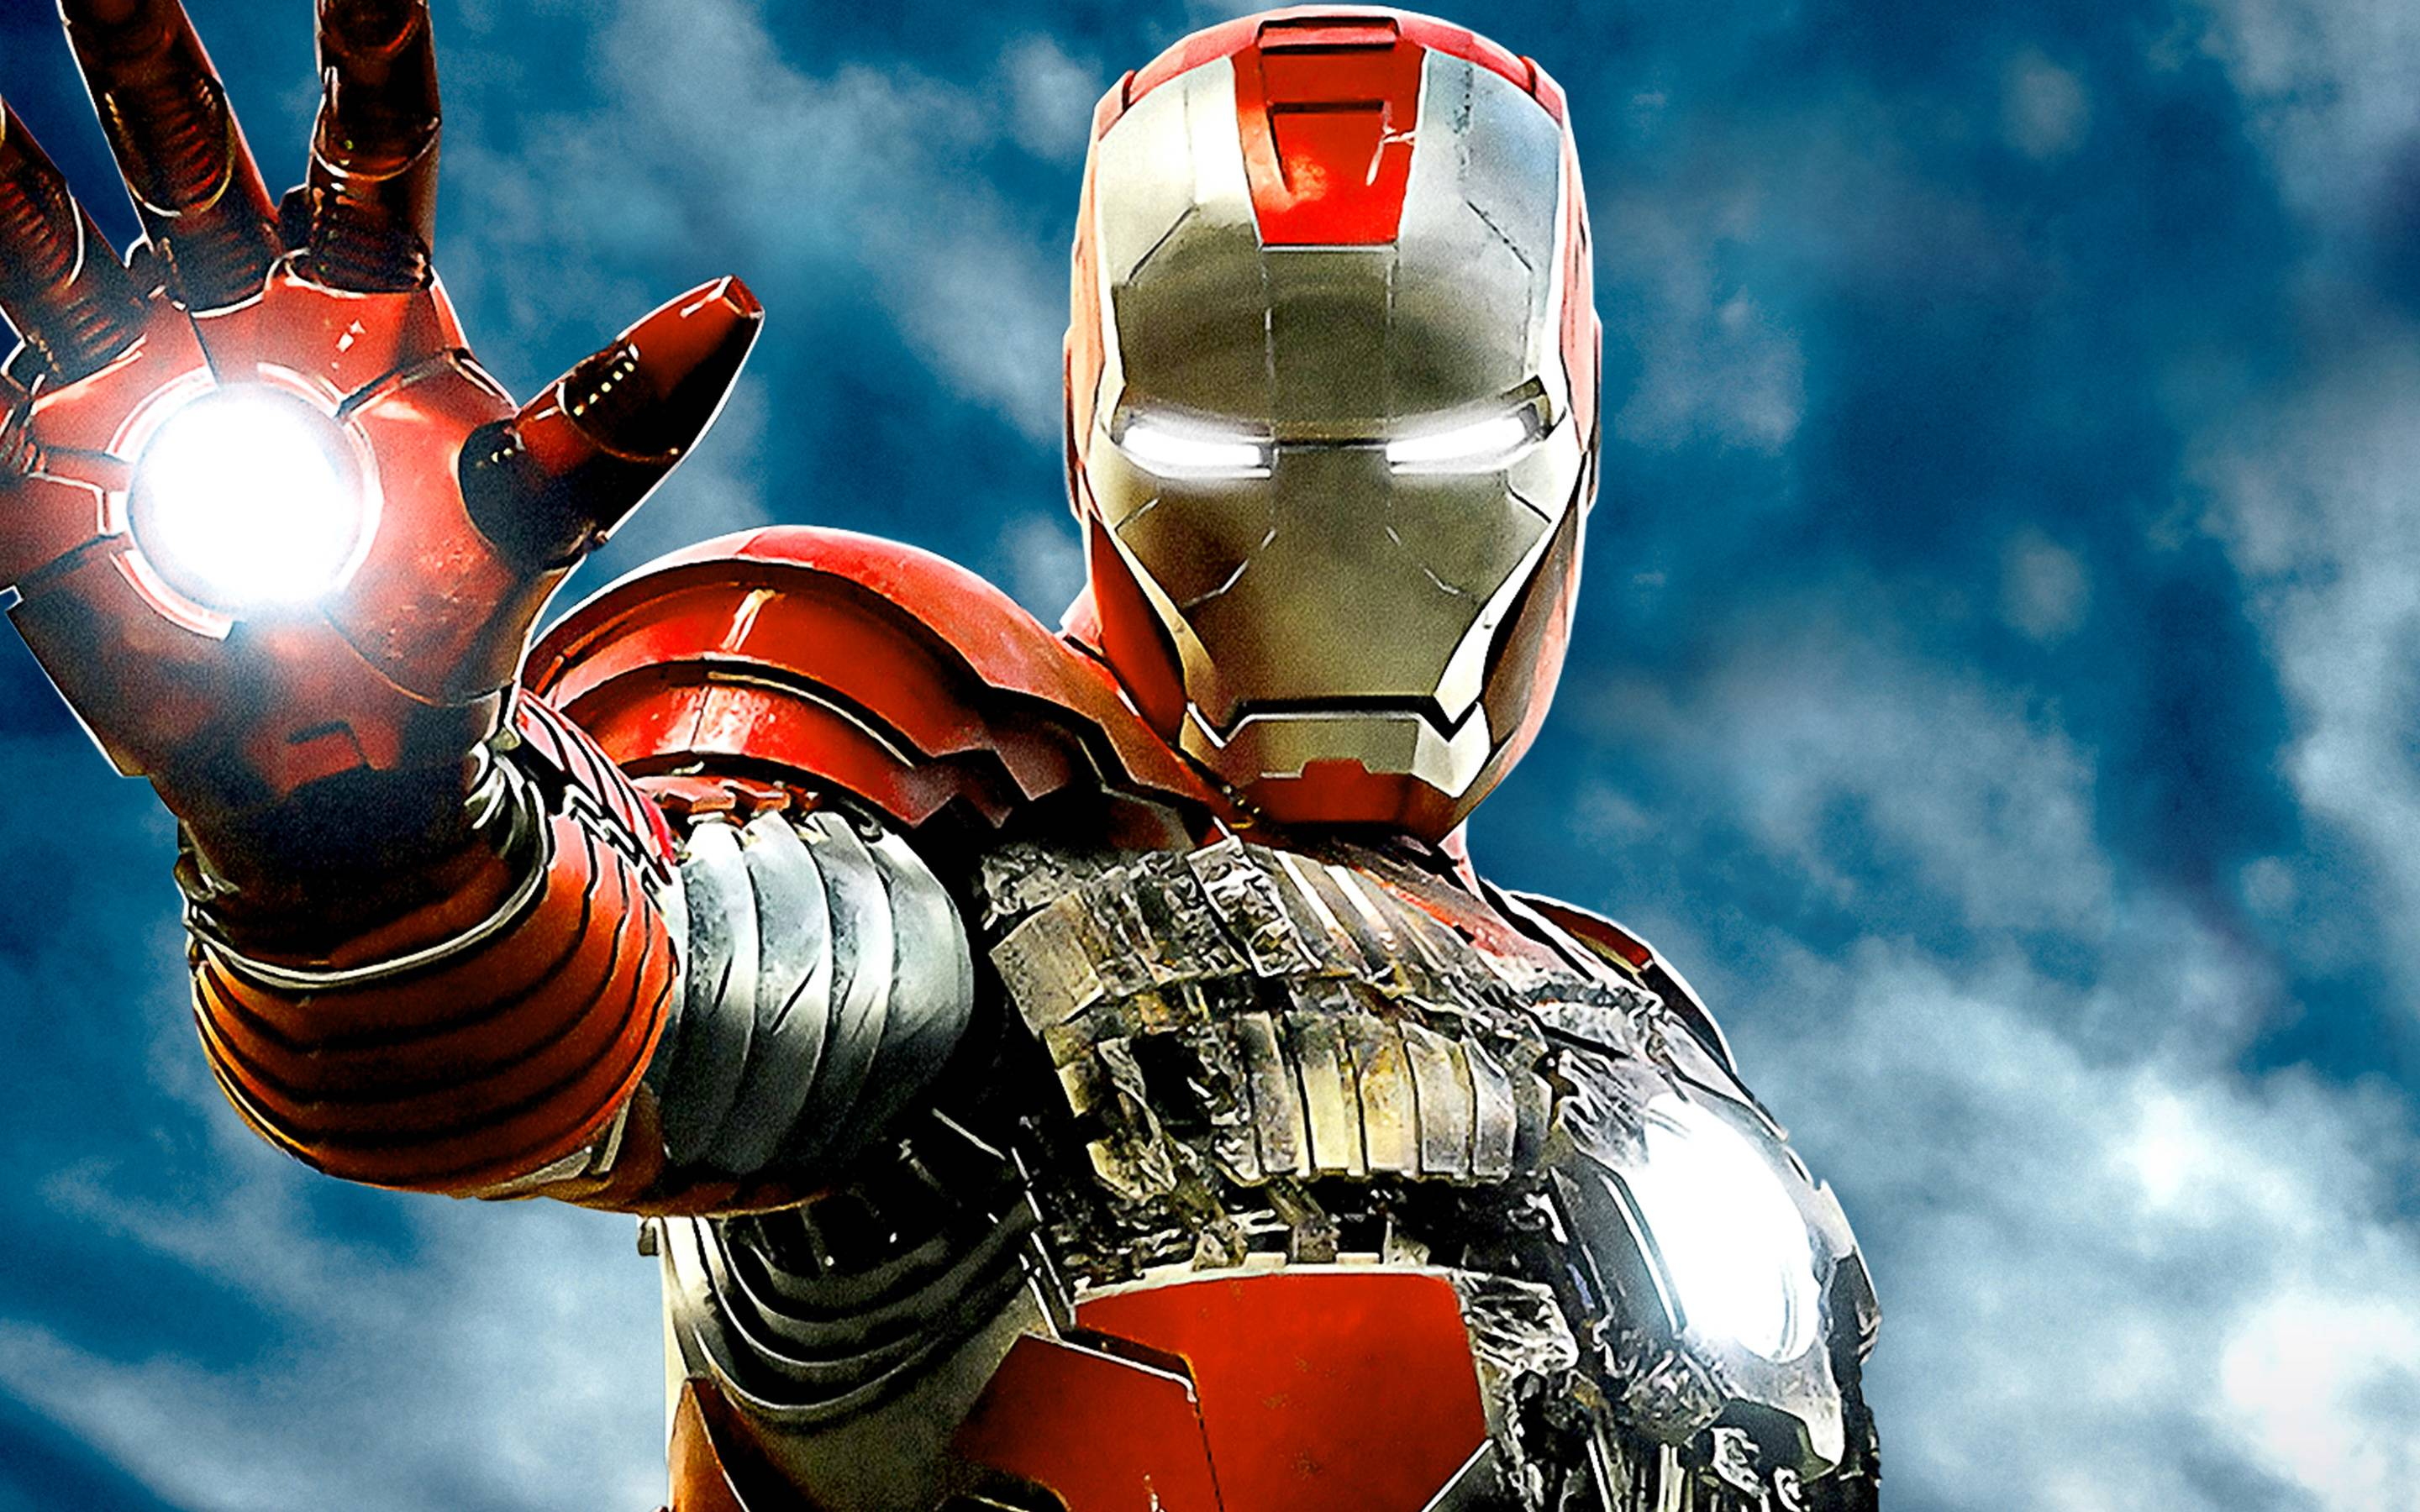 Iron Man 2 Wallpaper Hd - Iron Man 2 4k , HD Wallpaper & Backgrounds